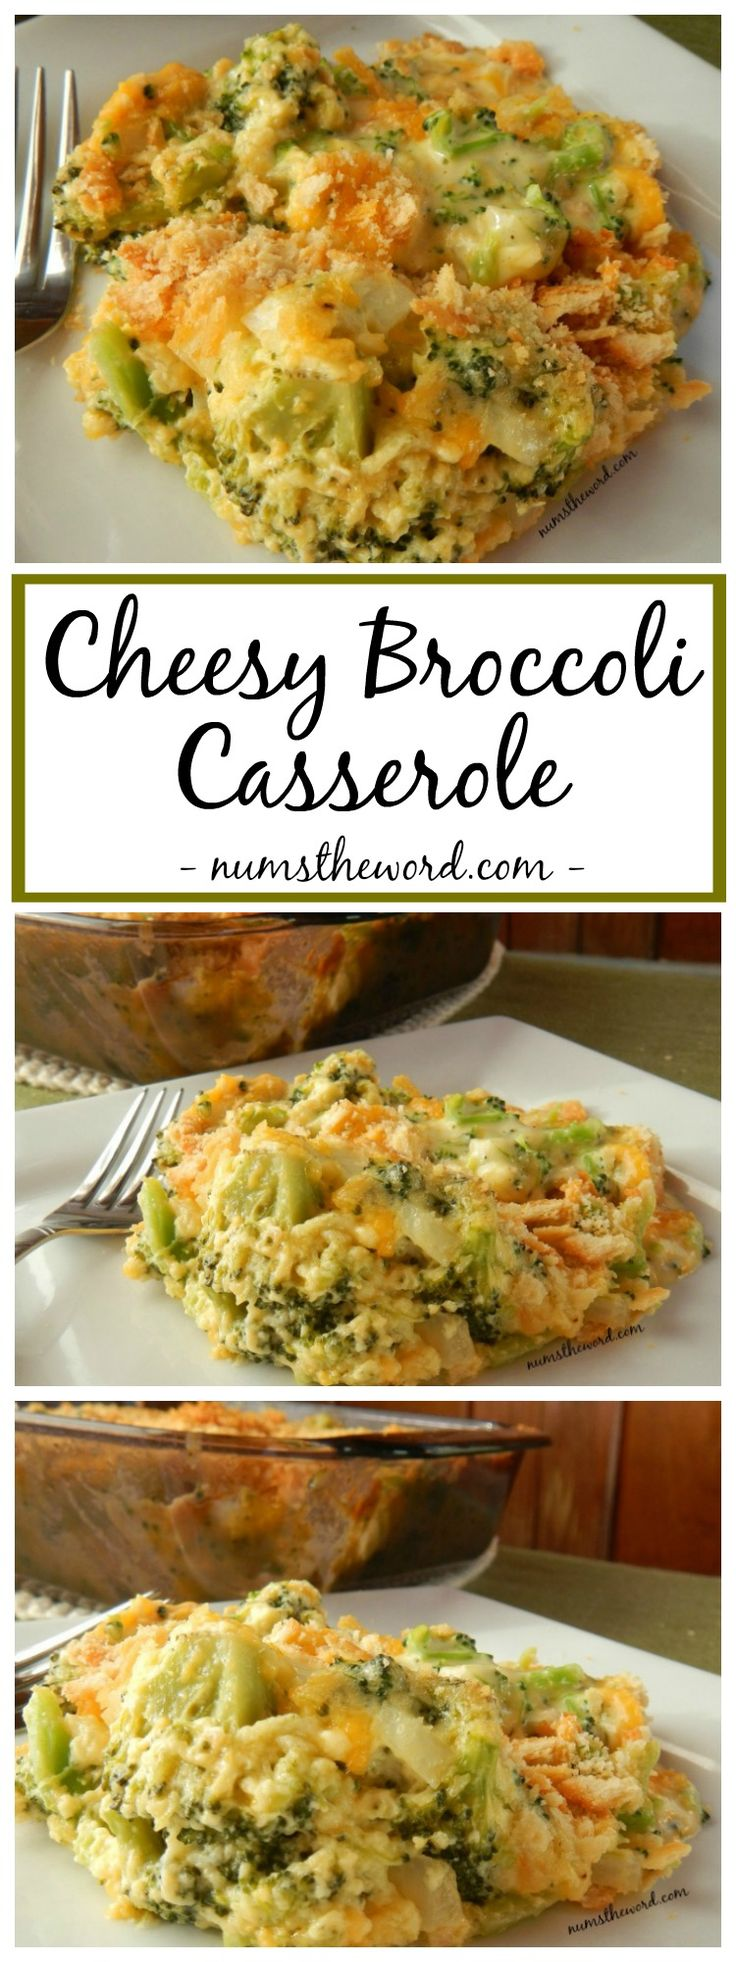 Cheesy Broccoli Casserole is the perfect side dish to any meal. Easy to prepare, tastes delicious and is a crowd pleaser! A family favorite recipe!